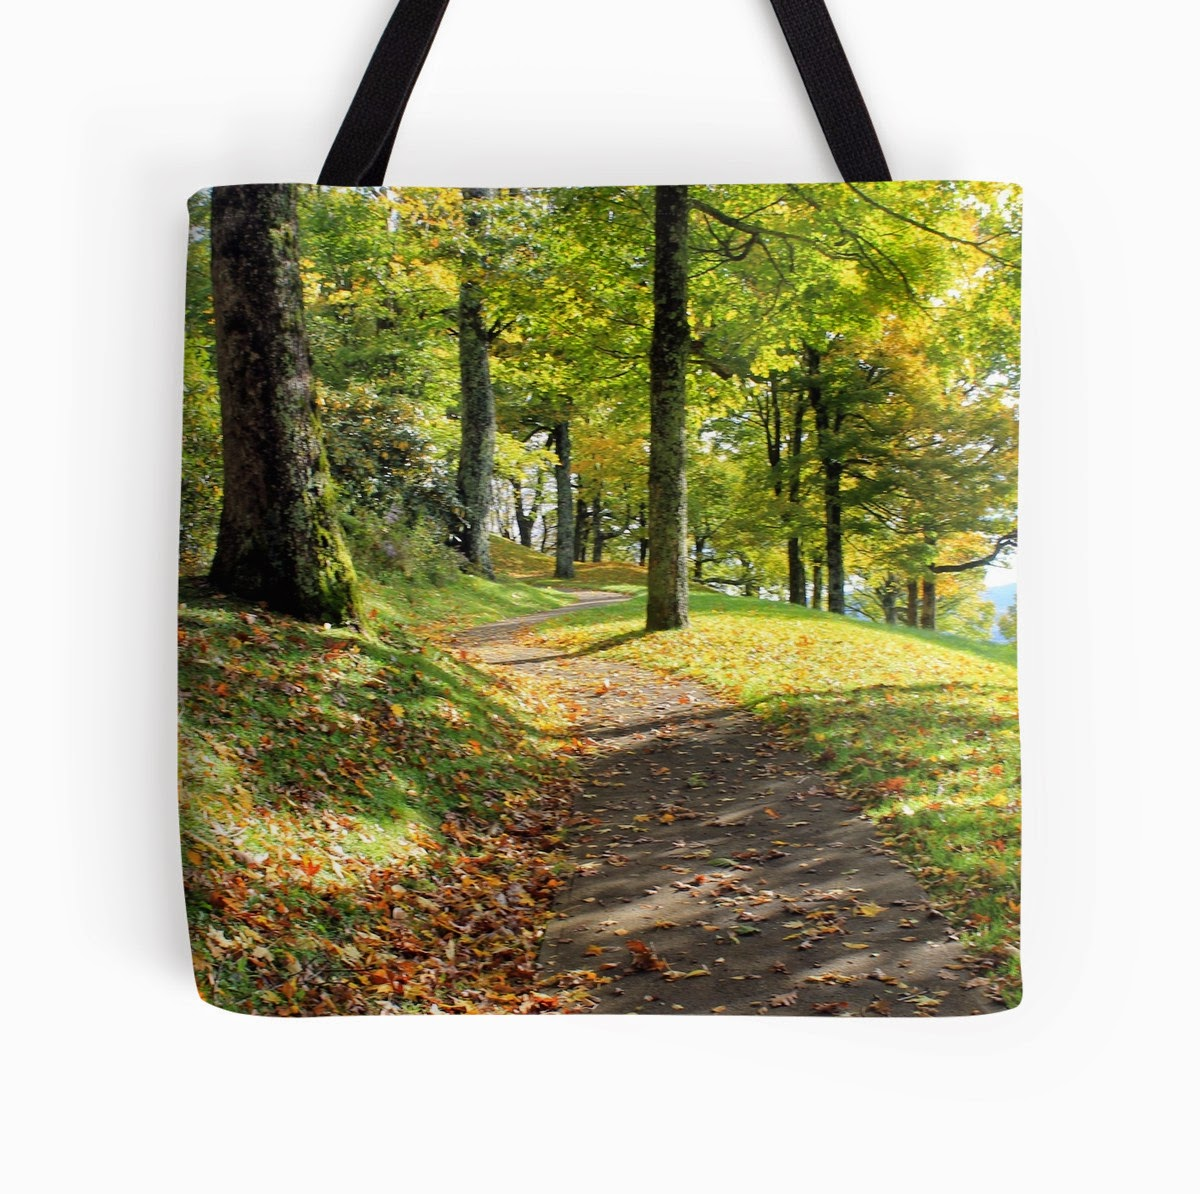 http://www.redbubble.com/people/gluvsc/shop/tote-bags?ref=portfolio_product_refinement